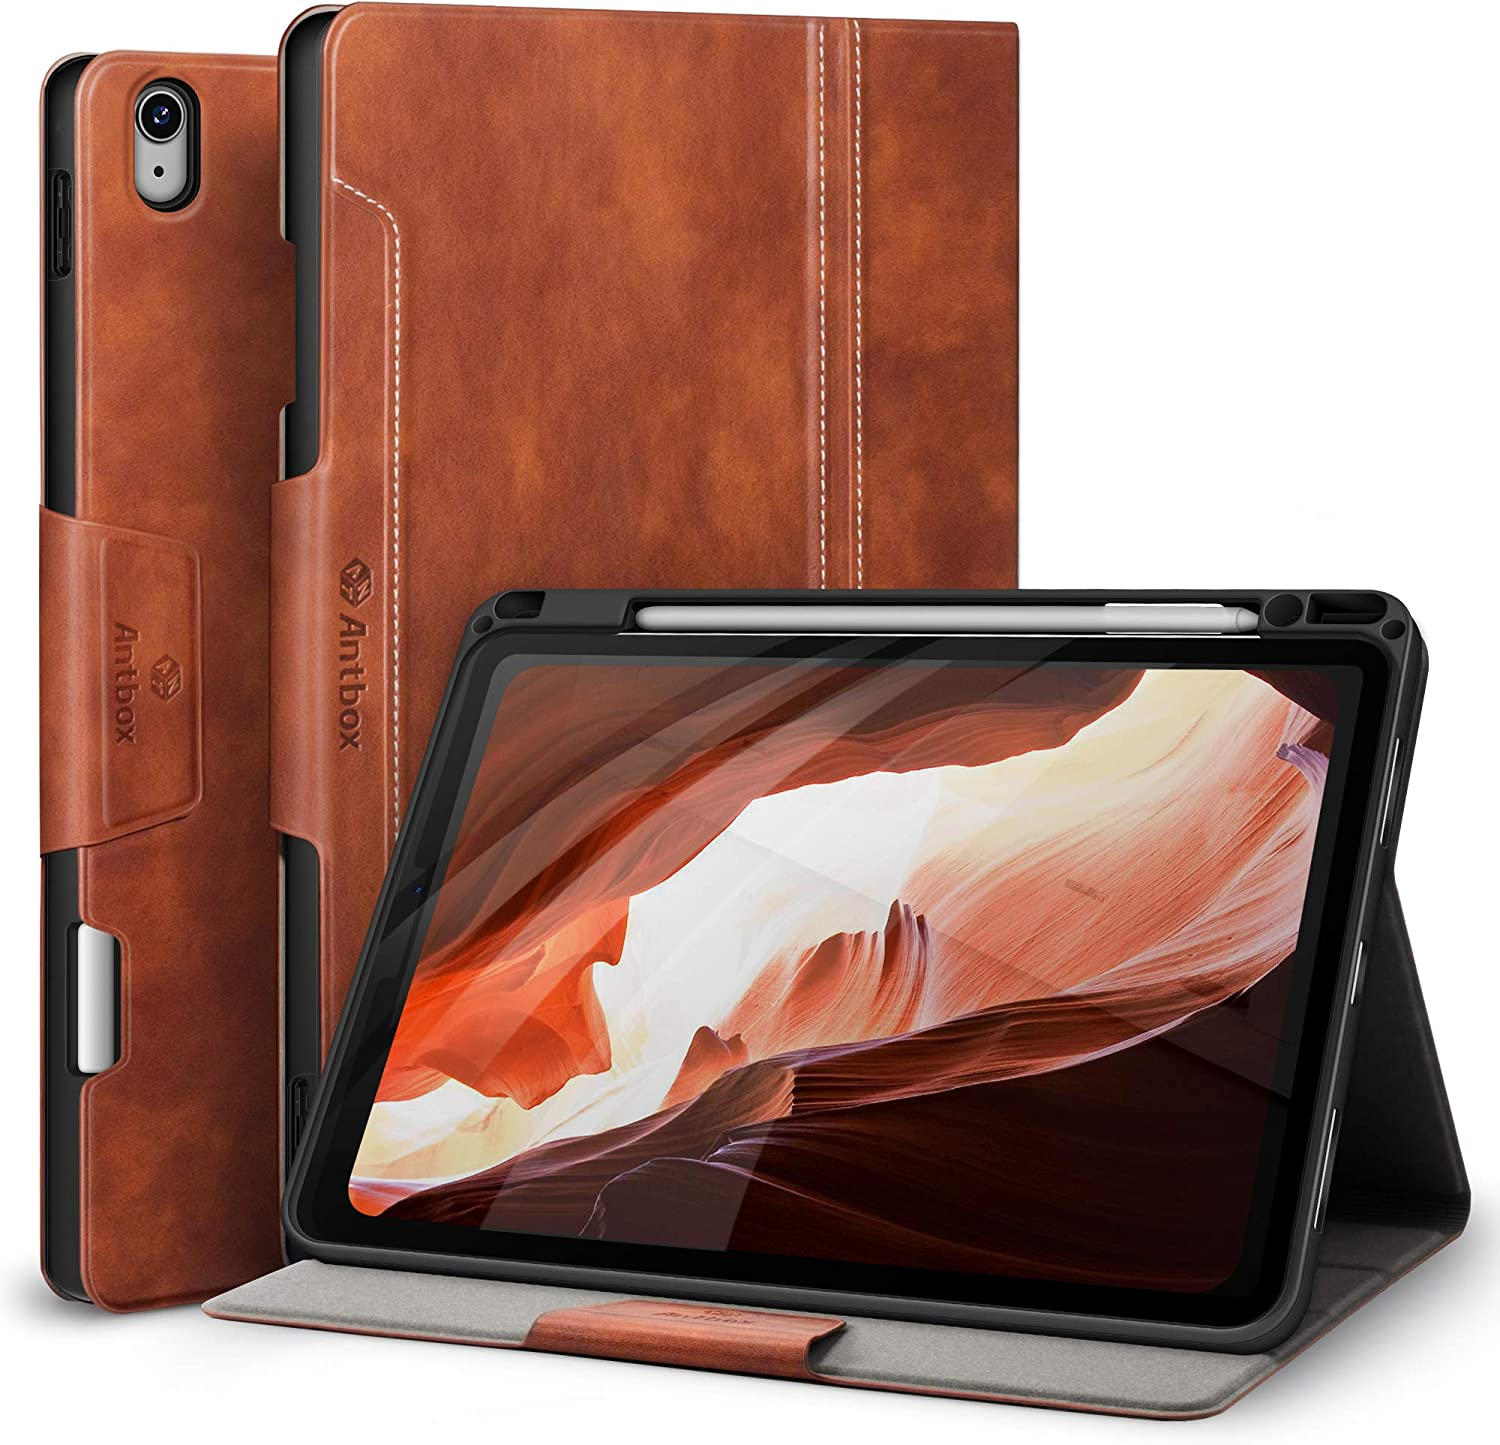 """Antbox Case for iPad Air 4 10.9"""" Case 2020 with Built-in Apple Pencil Holder [Support 2nd Gen Apple Pencil Charging] Stand Cover (Brown)"""